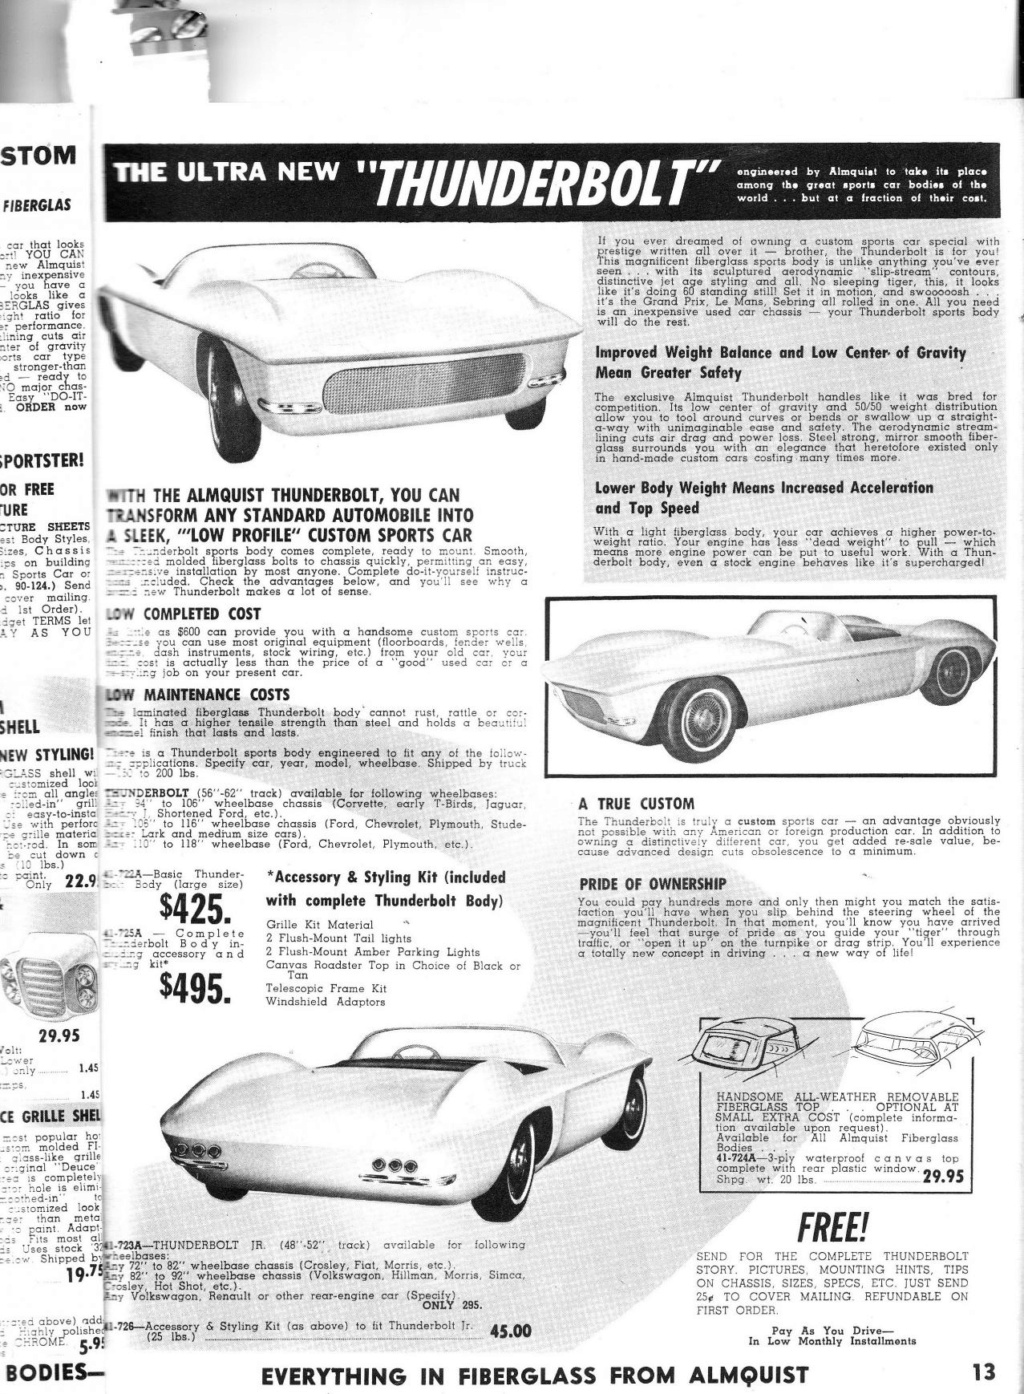 Almquist catalog, Speed, Mileage, Customizing, Performance - World's largest supplier of hi-performance equipement -  1963 Img_0013